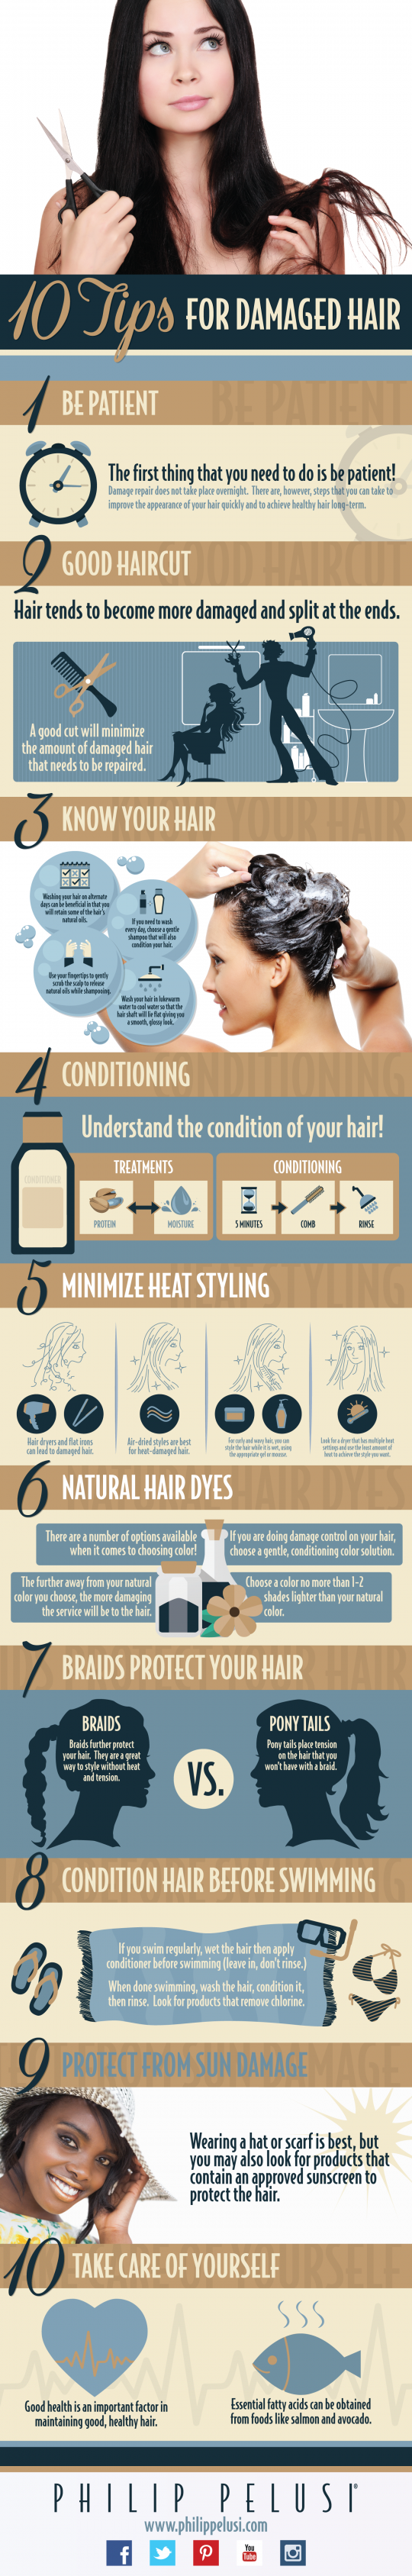 10 Tips for Damaged Hair